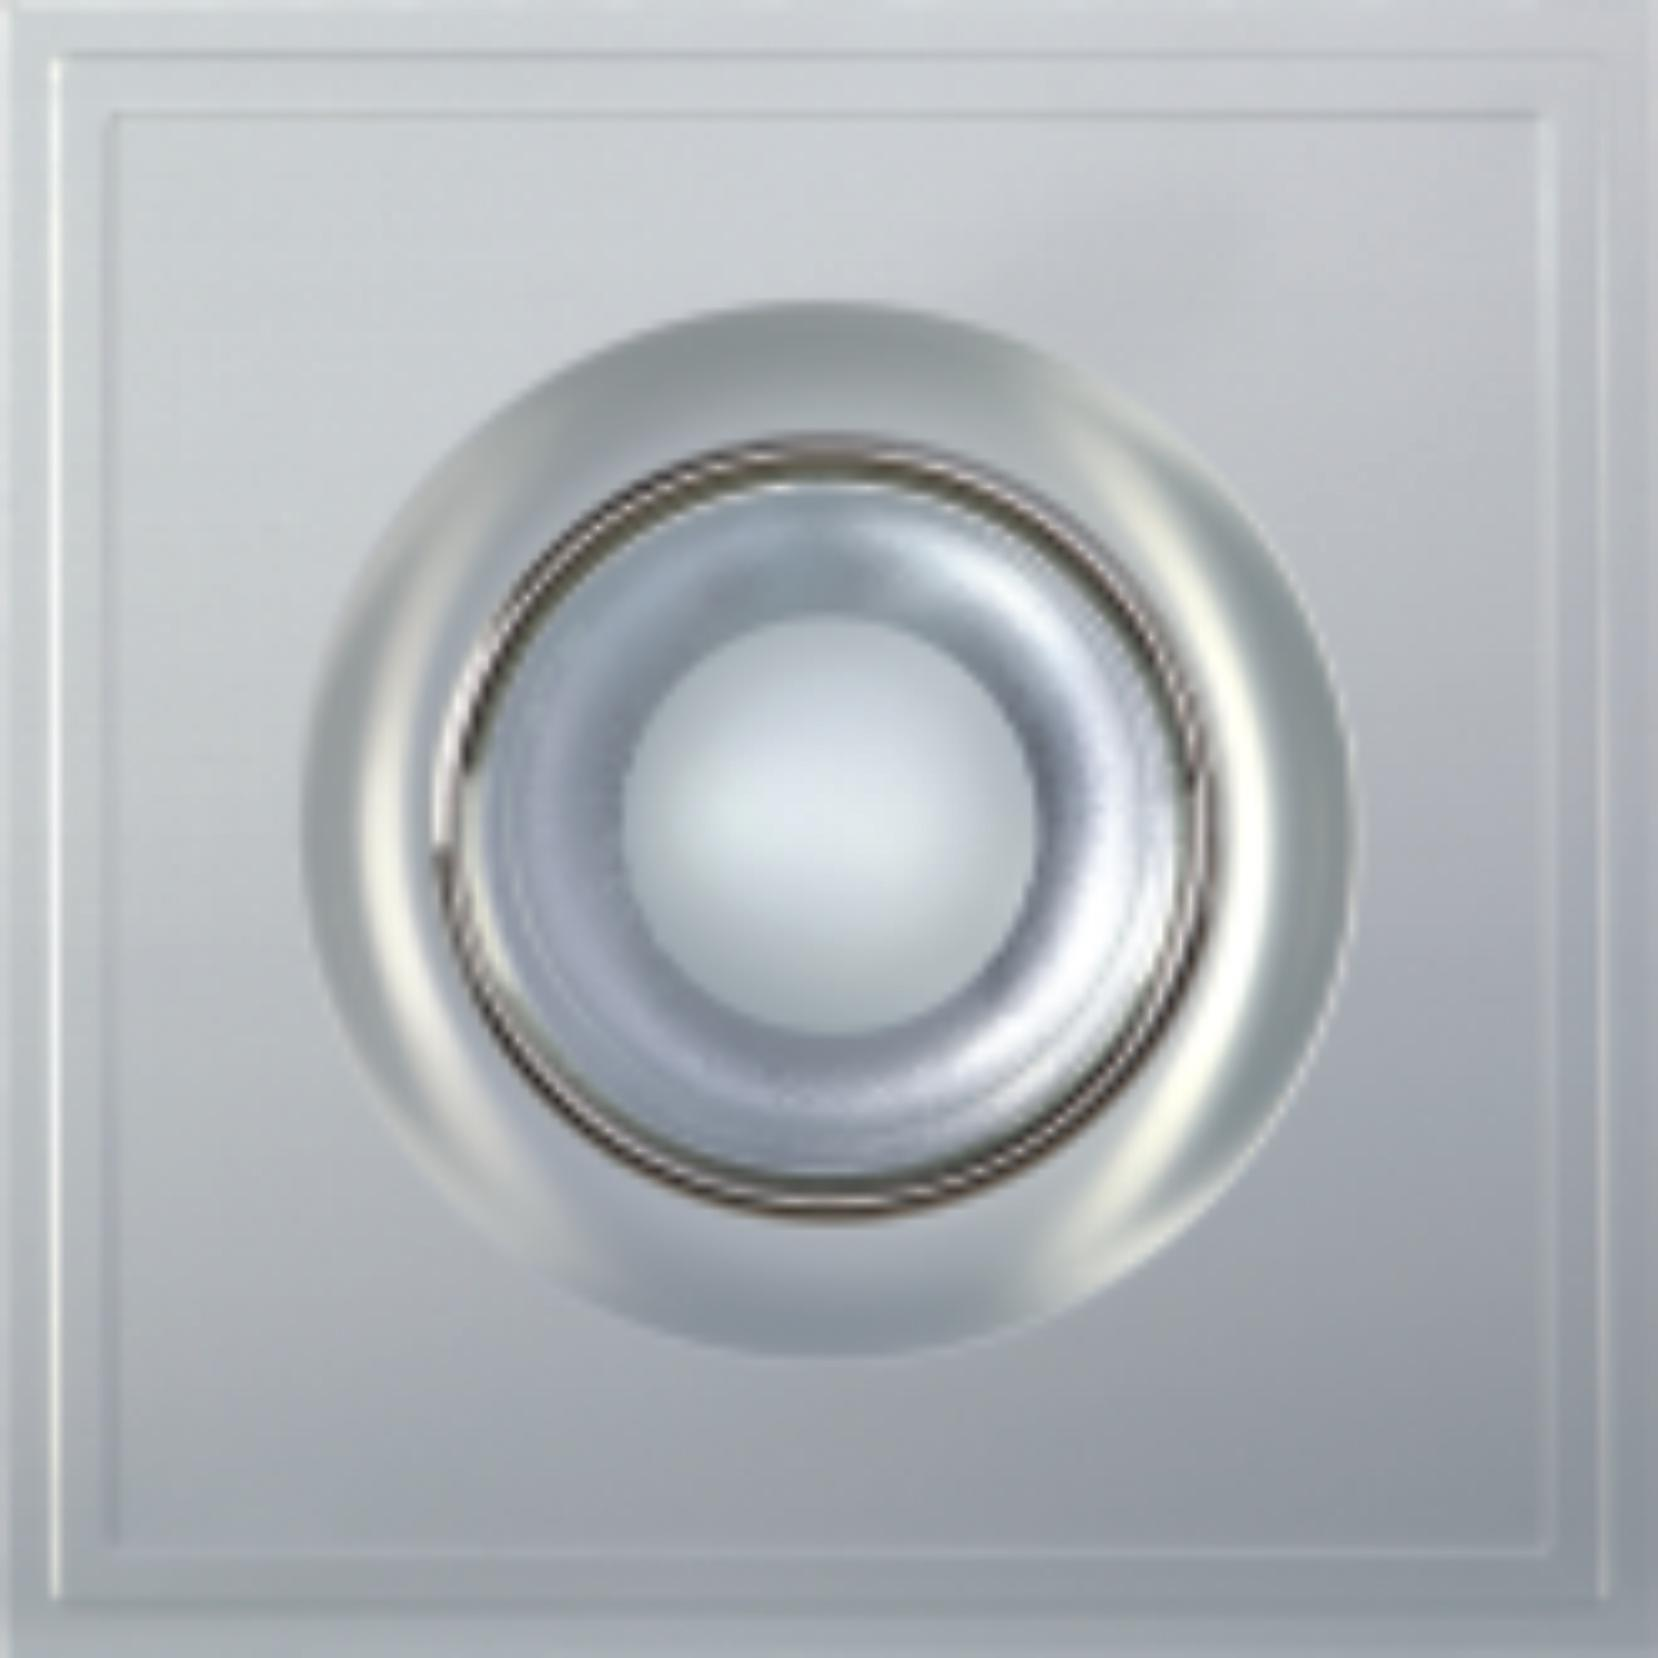 Ceiling Lights - Close to Ceiling Lighting Fixtures, Replacement